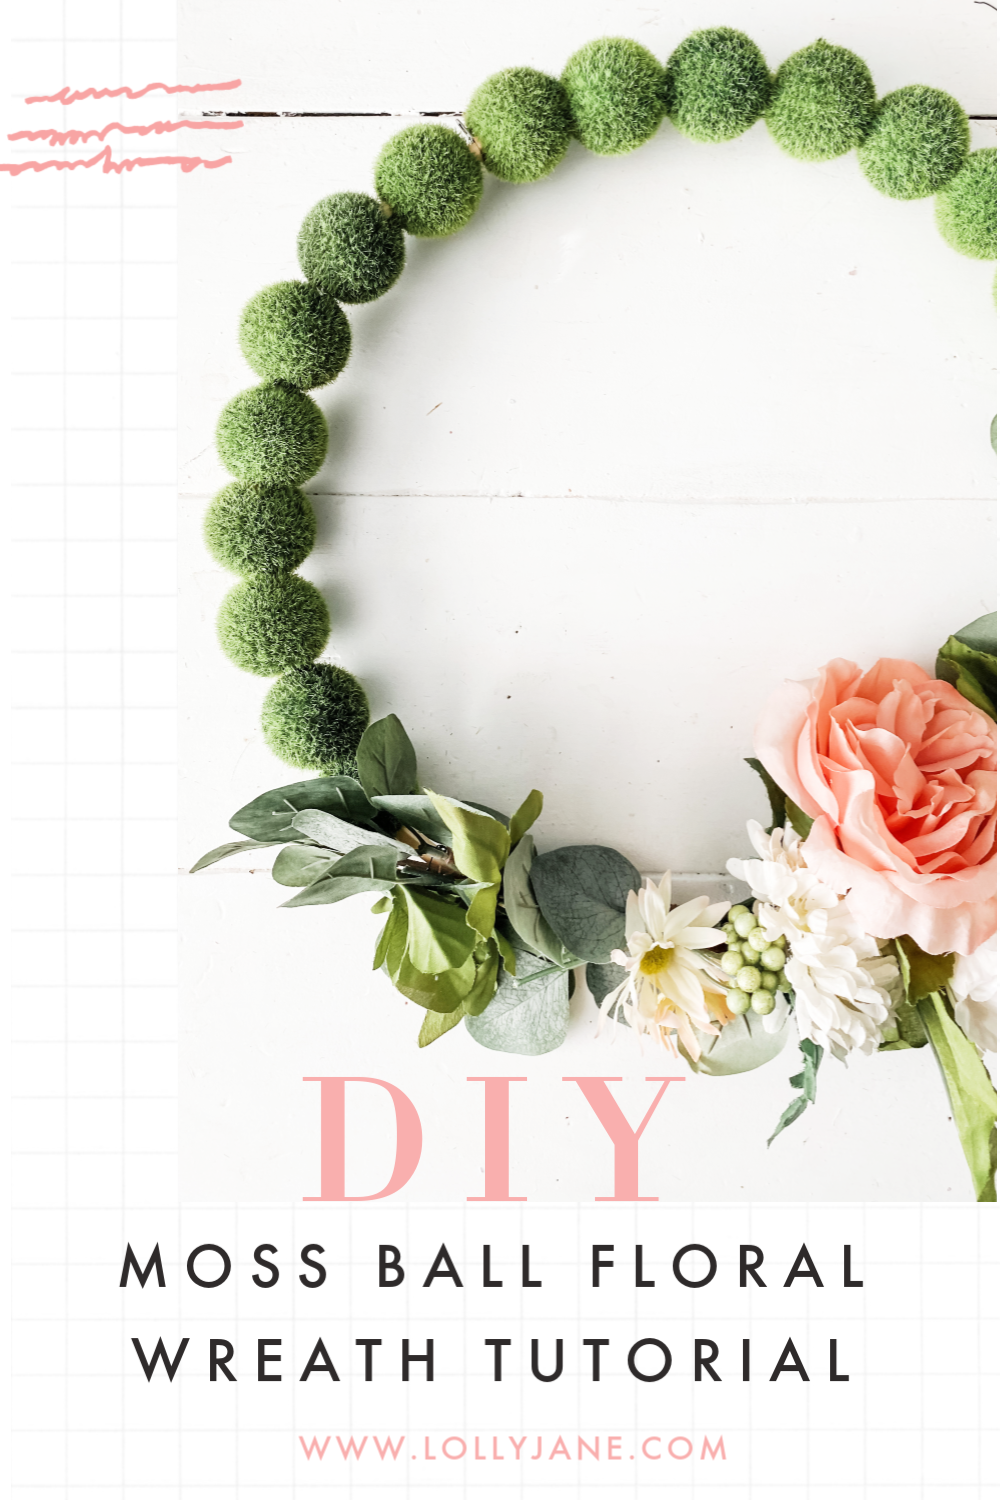 DIY moss ball wreath: such a fun spring wreath idea! This would look cute to display for easy outdoor porch decor, such a fun front door wreath. So cute to leave up all year, too! #wreath #diywreath #mossballwreath #mossballfloraldiy #outdoordecor